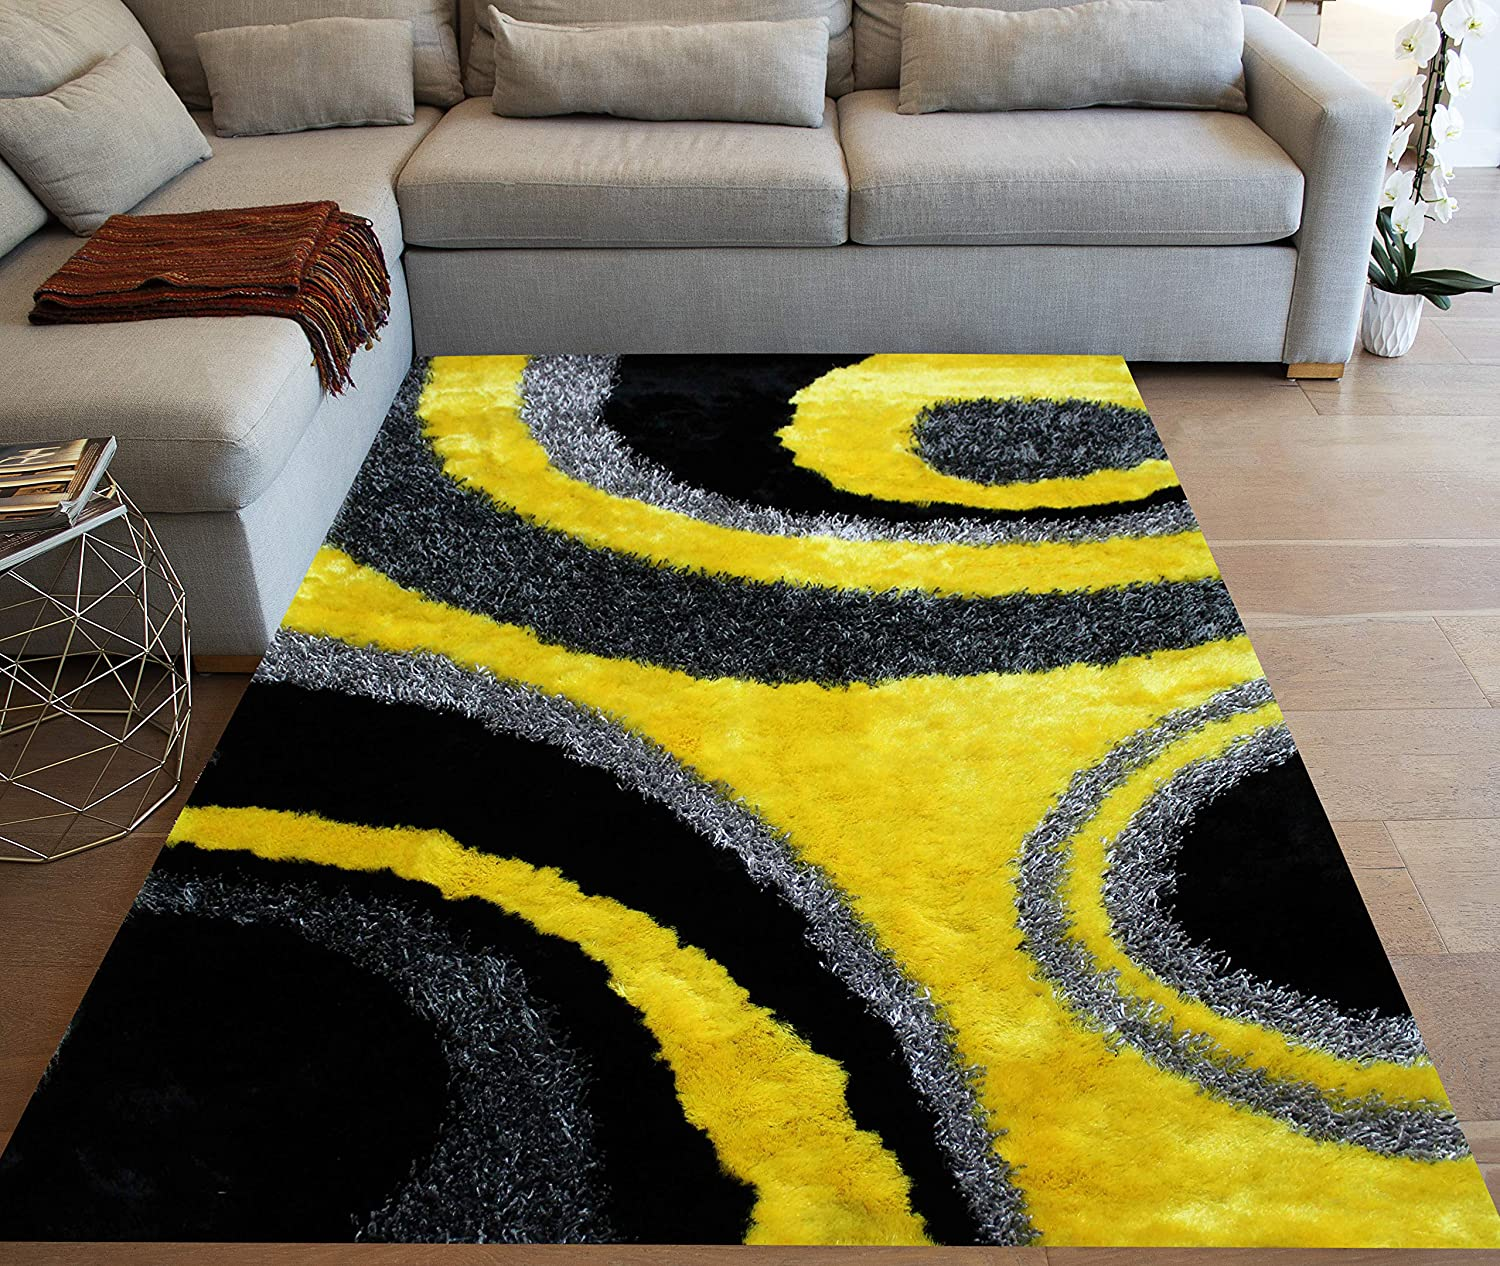 Yellow Black Gray Grey Colors 8 X10 Feet Shag Shaggy 3d Carved Area Rug Carpet Rug Indoor Bedroom Living Room Decorative Designer Modern Contemporary Plush Pile Polyester Made Canvas Backing Kitchen